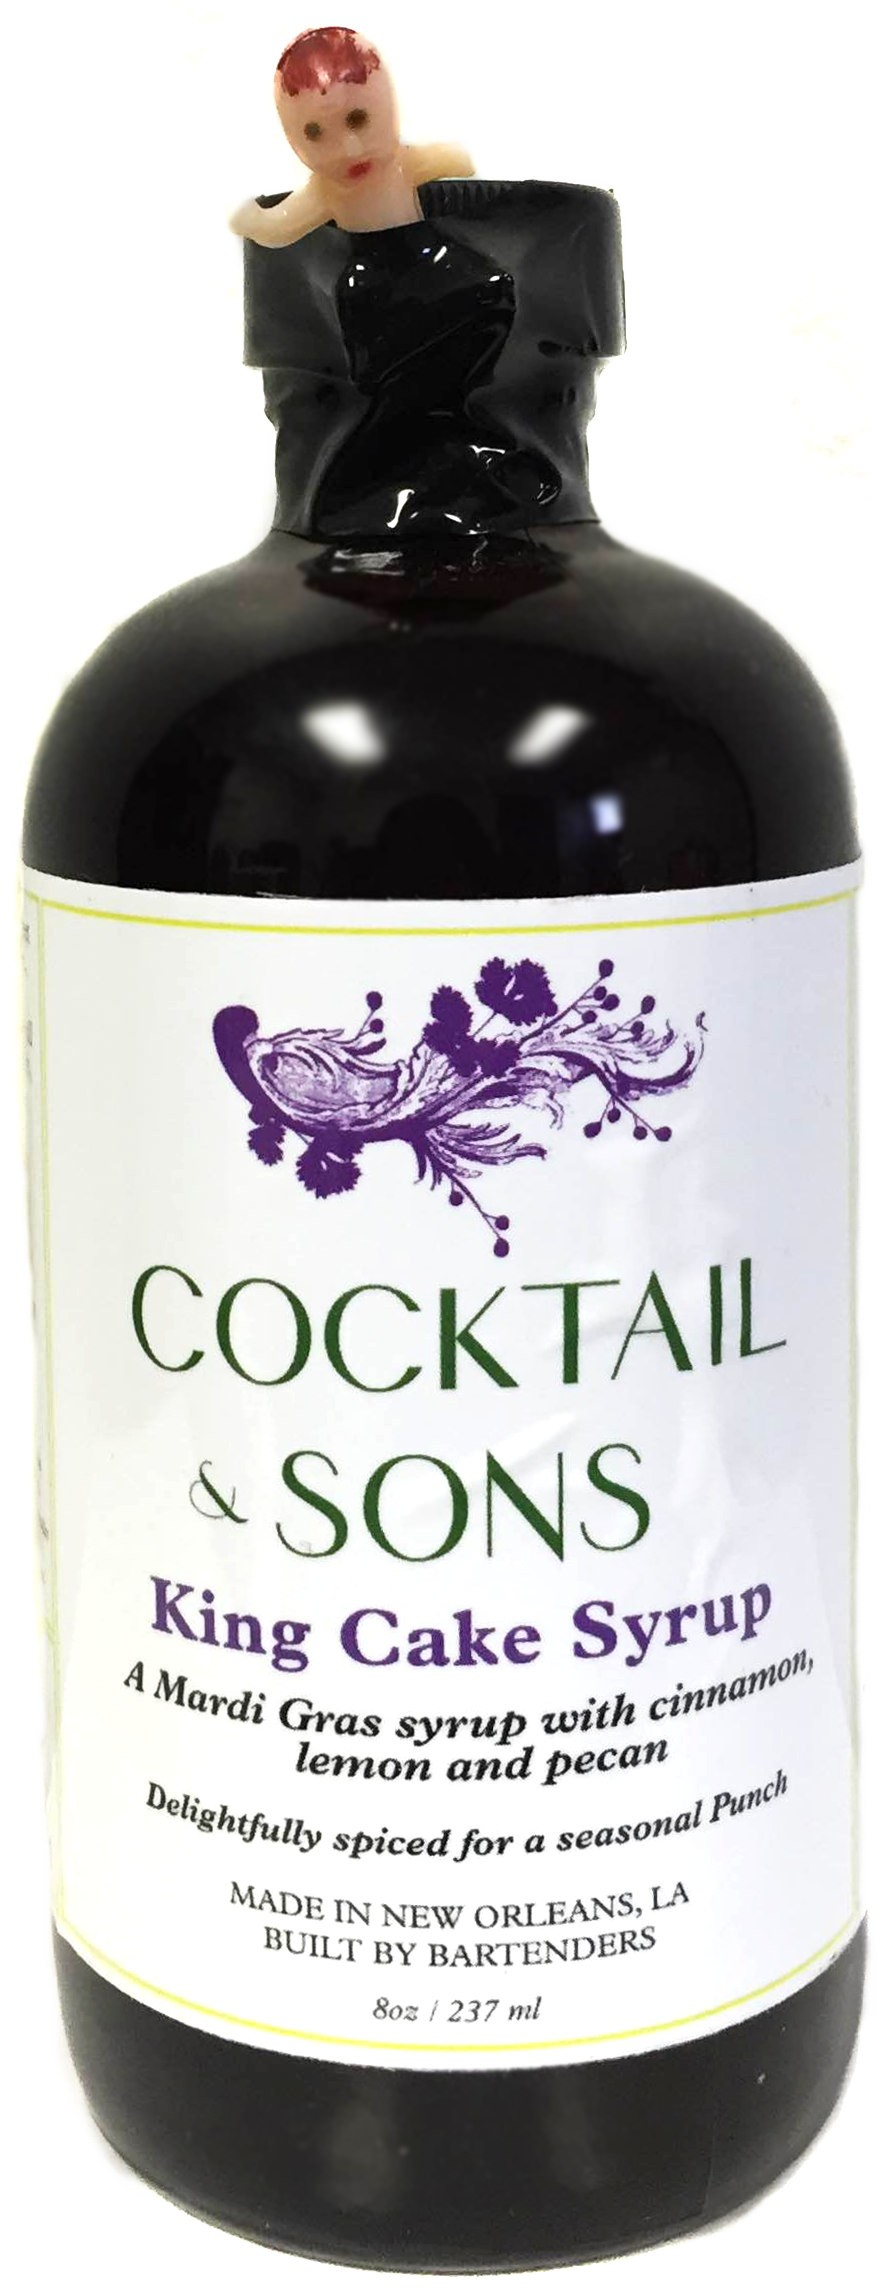 Cocktail & Sons King Cake Syrup